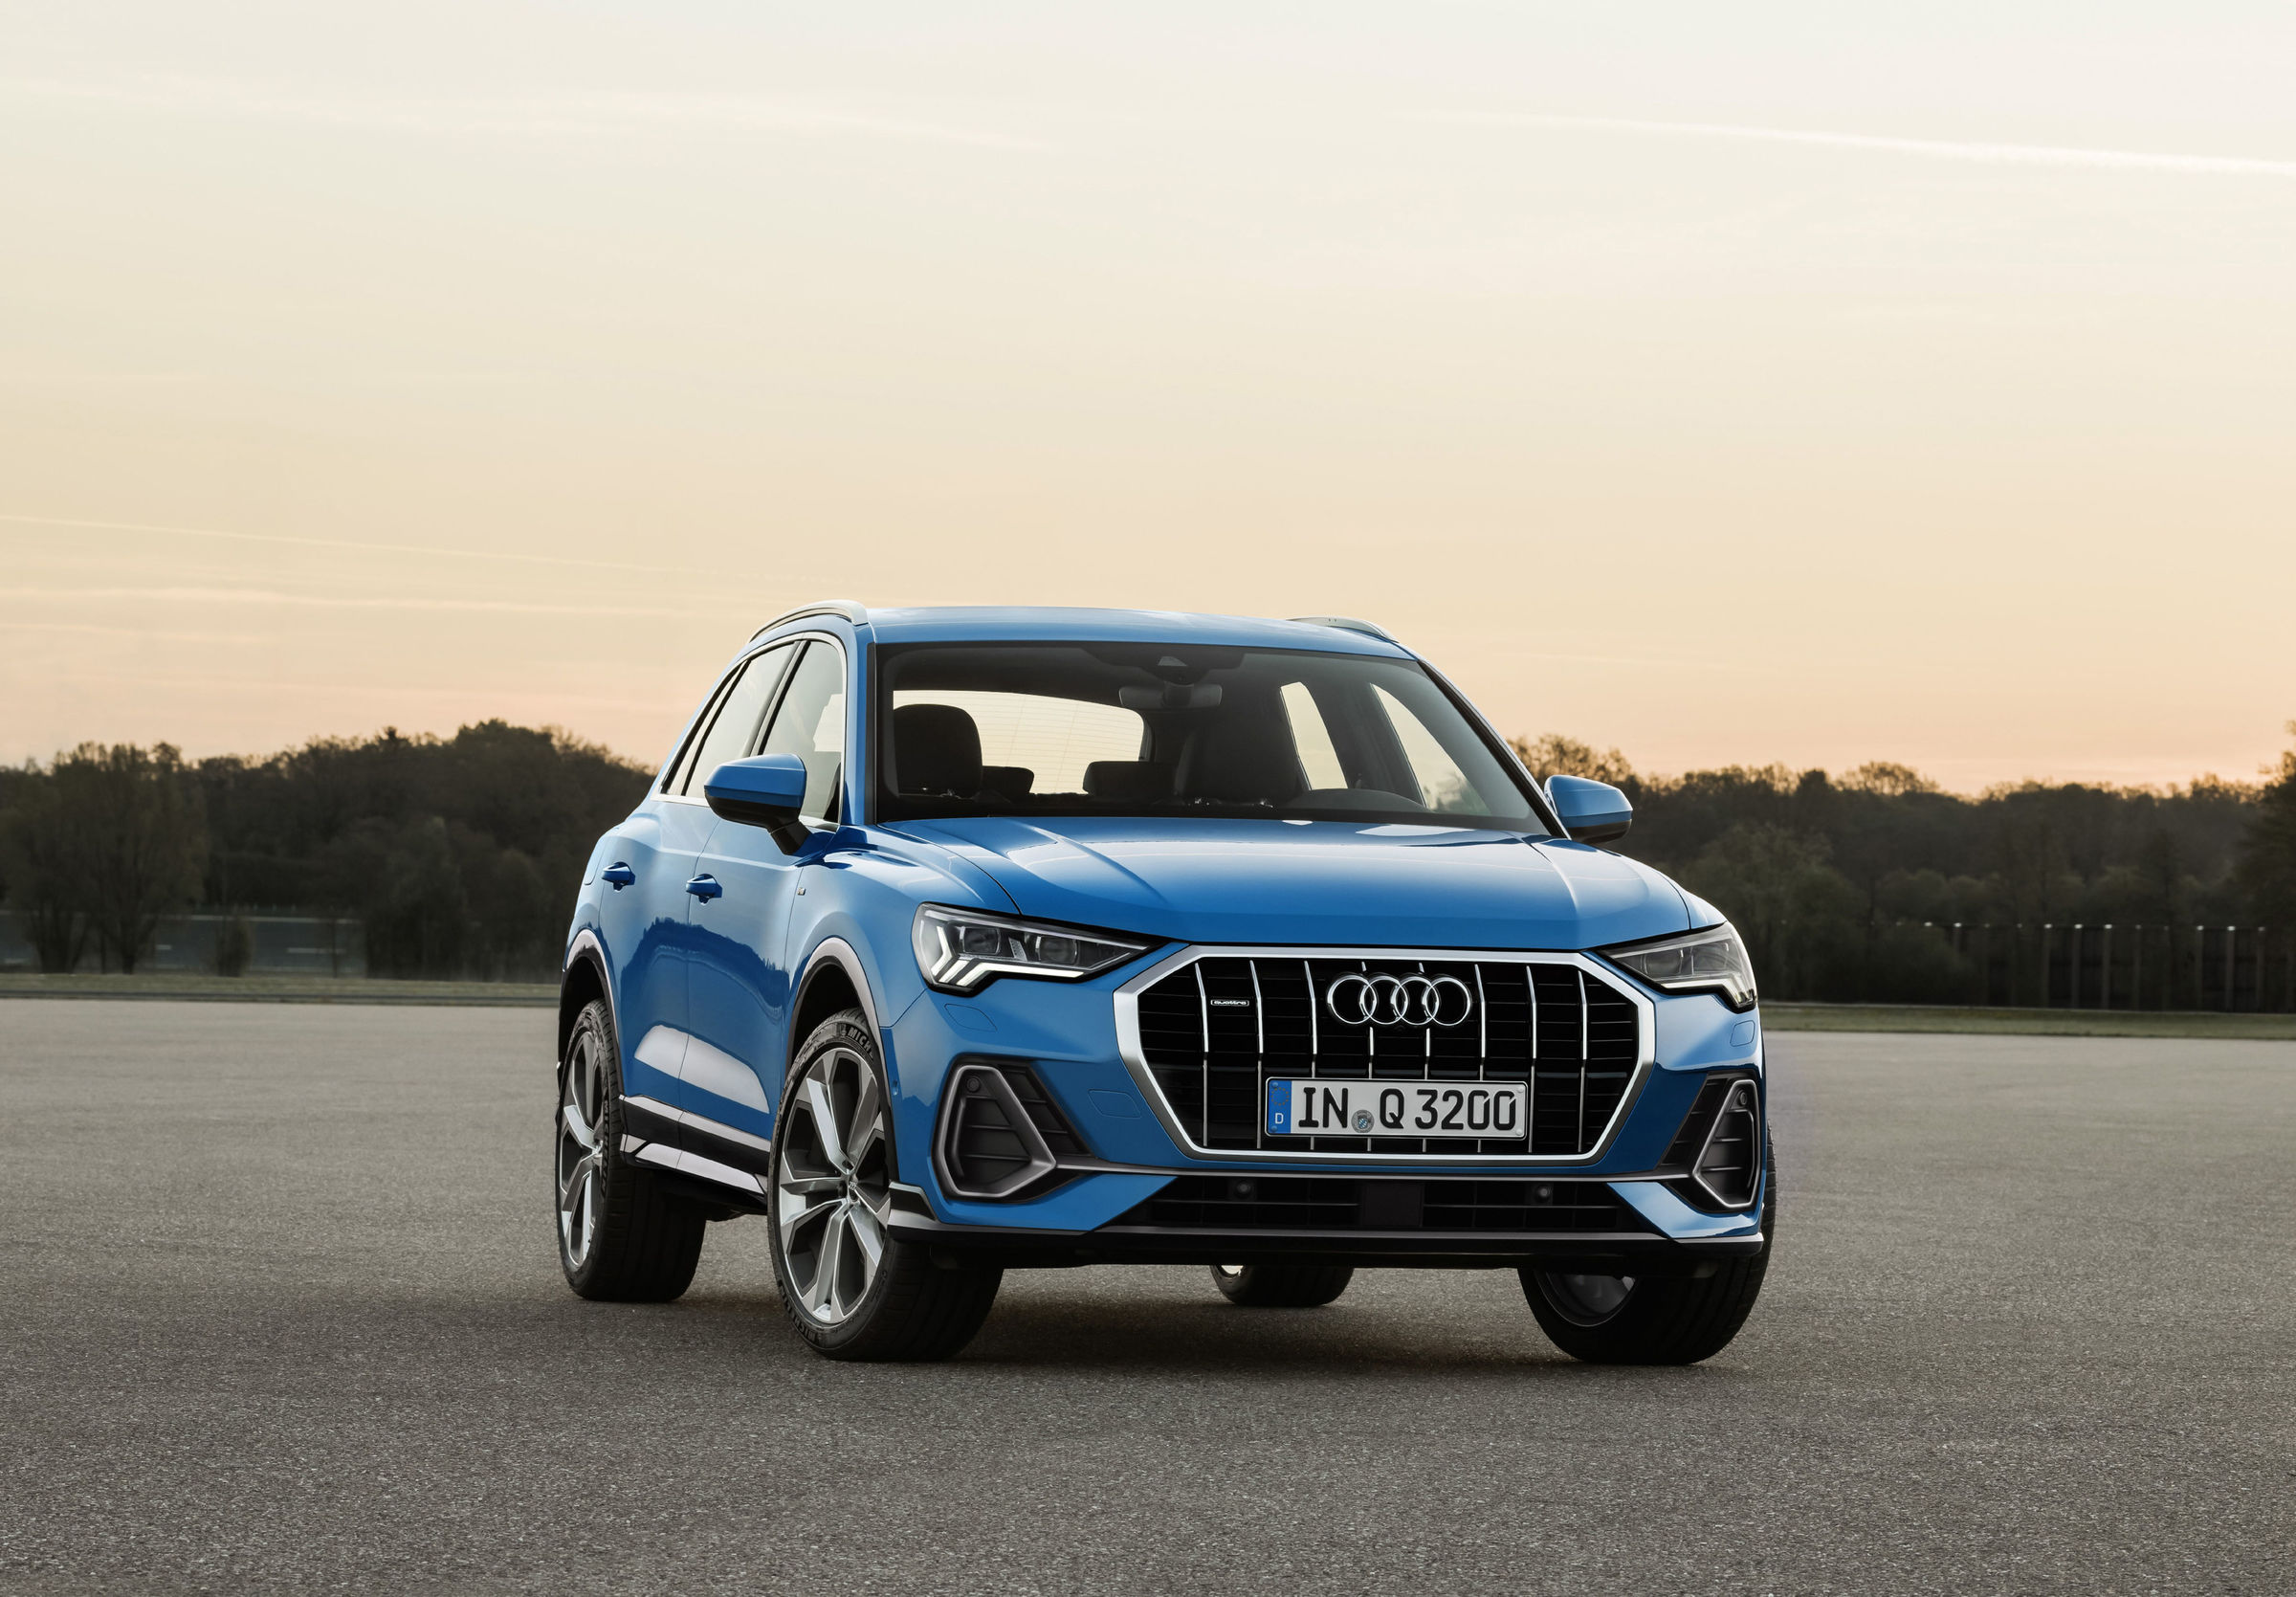 Bmw X2 Business Design >> AUDI Q3 specs - 2018 - autoevolution